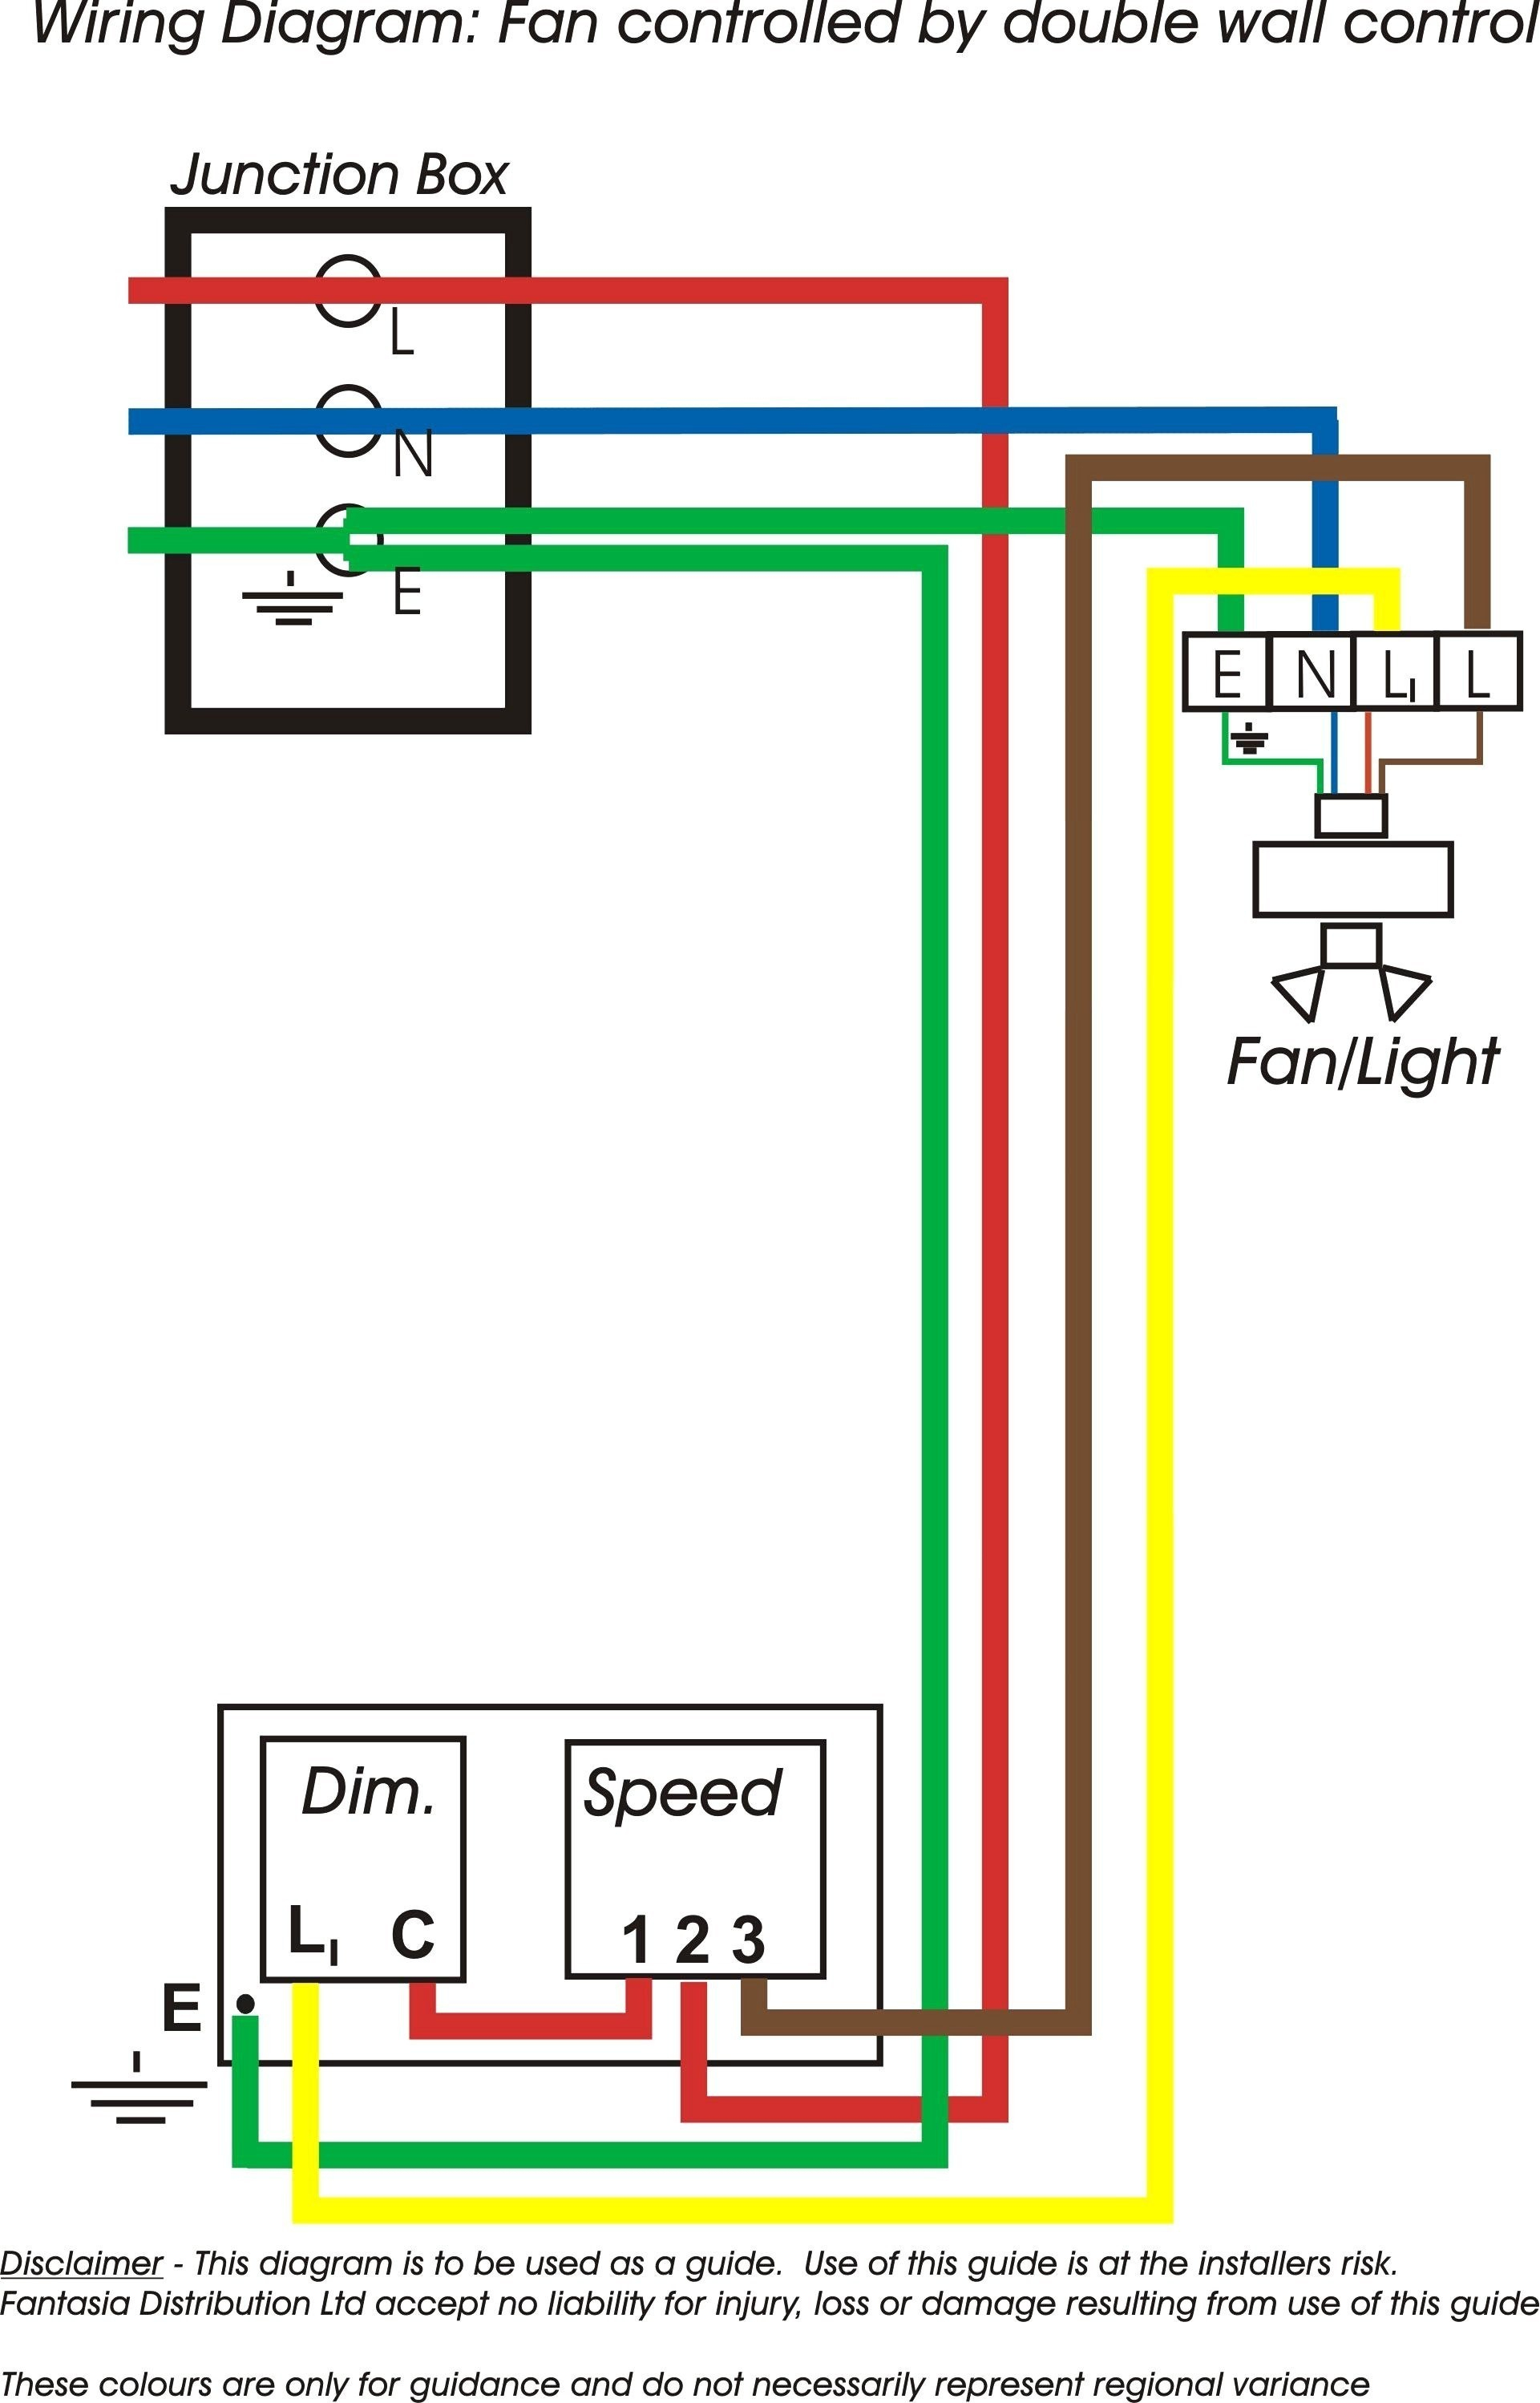 Bathroom Ventilation Fan Wiring Diagram | Manual E-Books - Wiring A Bathroom Fan And Light Diagram